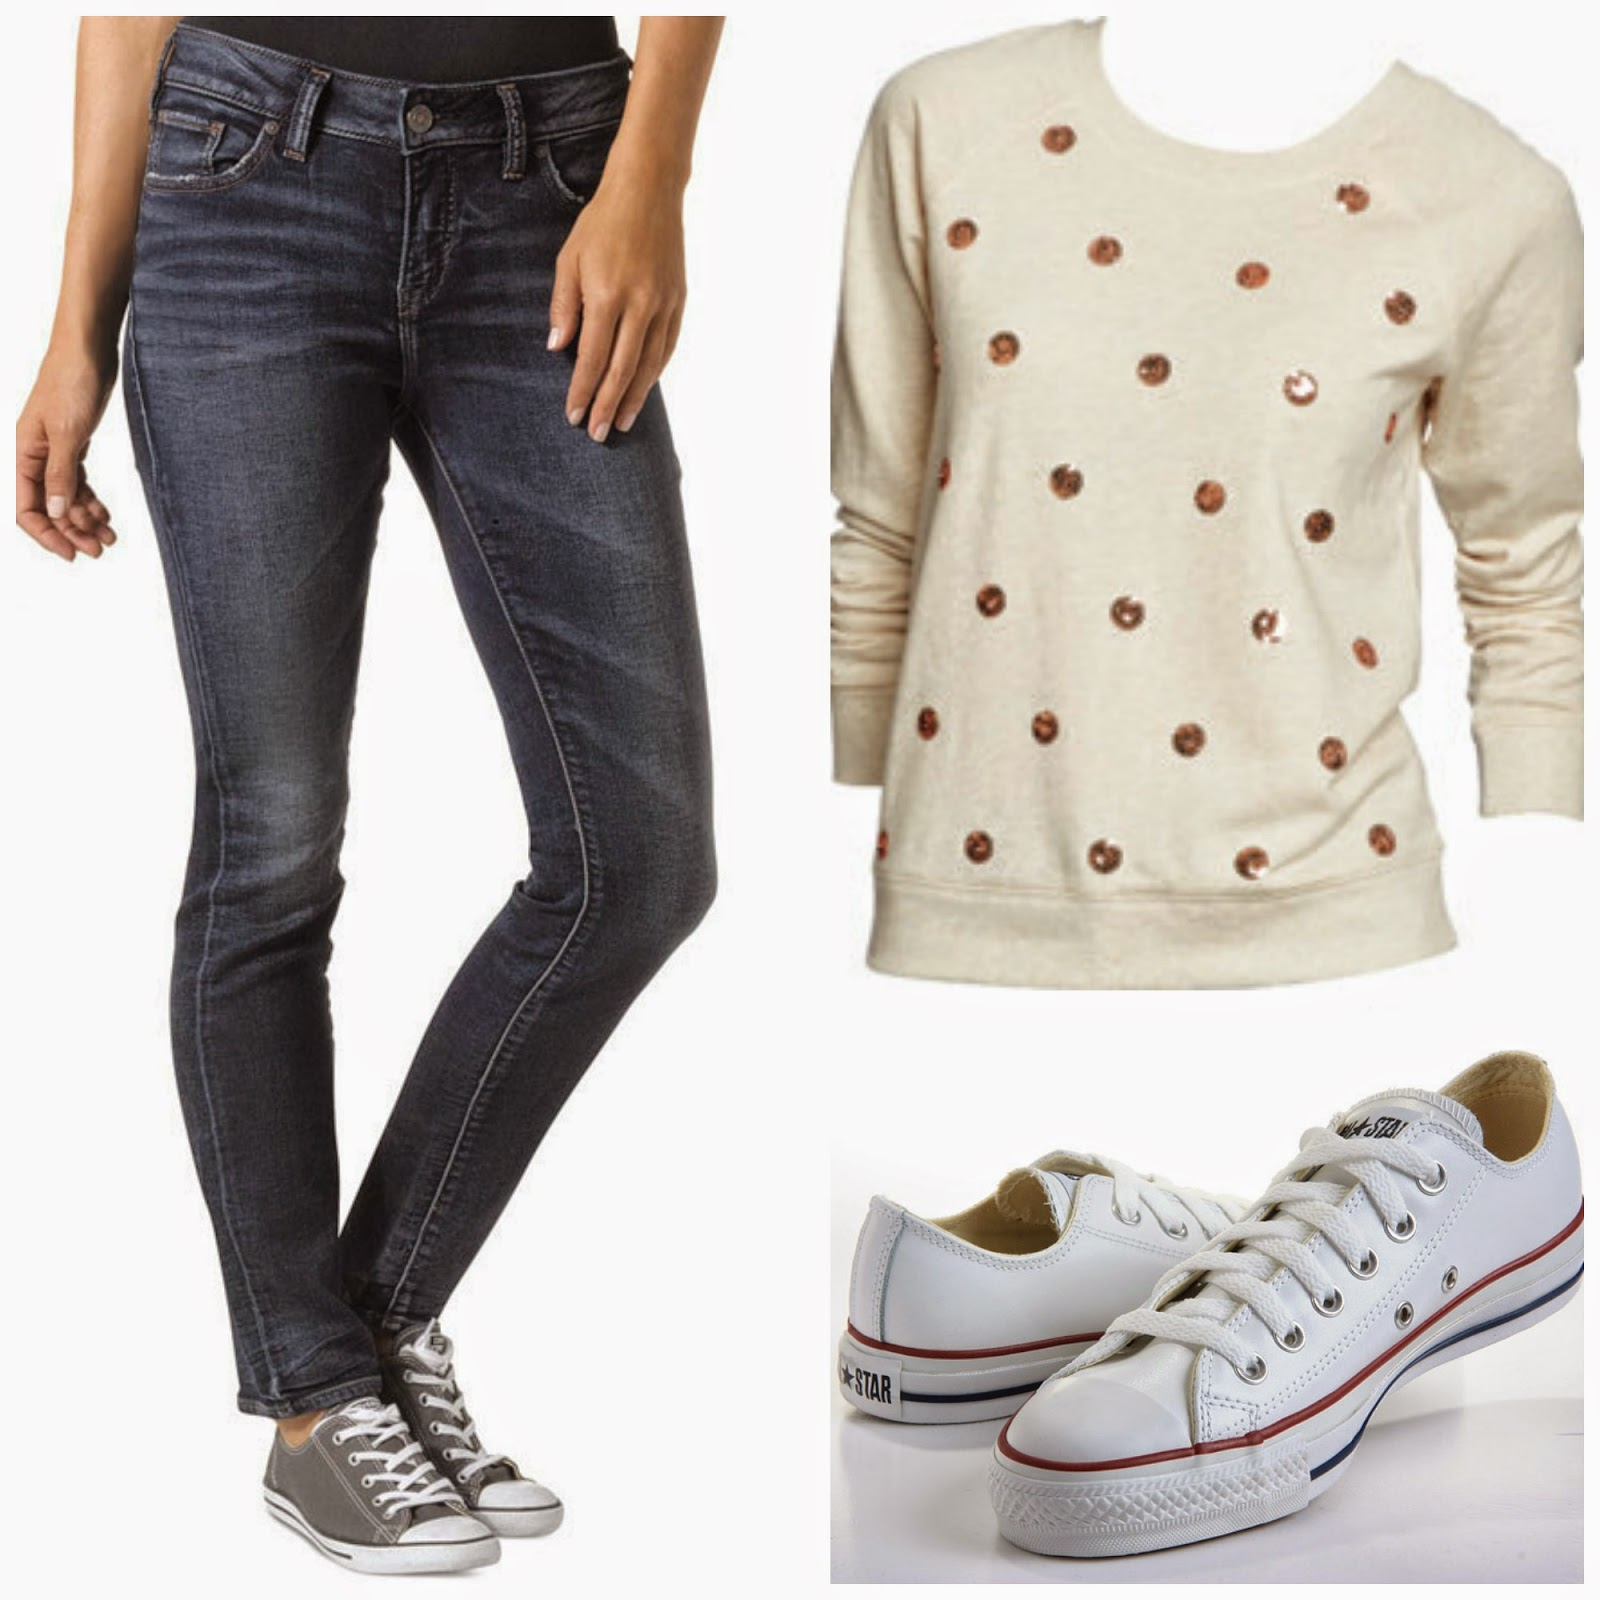 jeans, sequined polka dot sweatshirt, converse tennis shoes